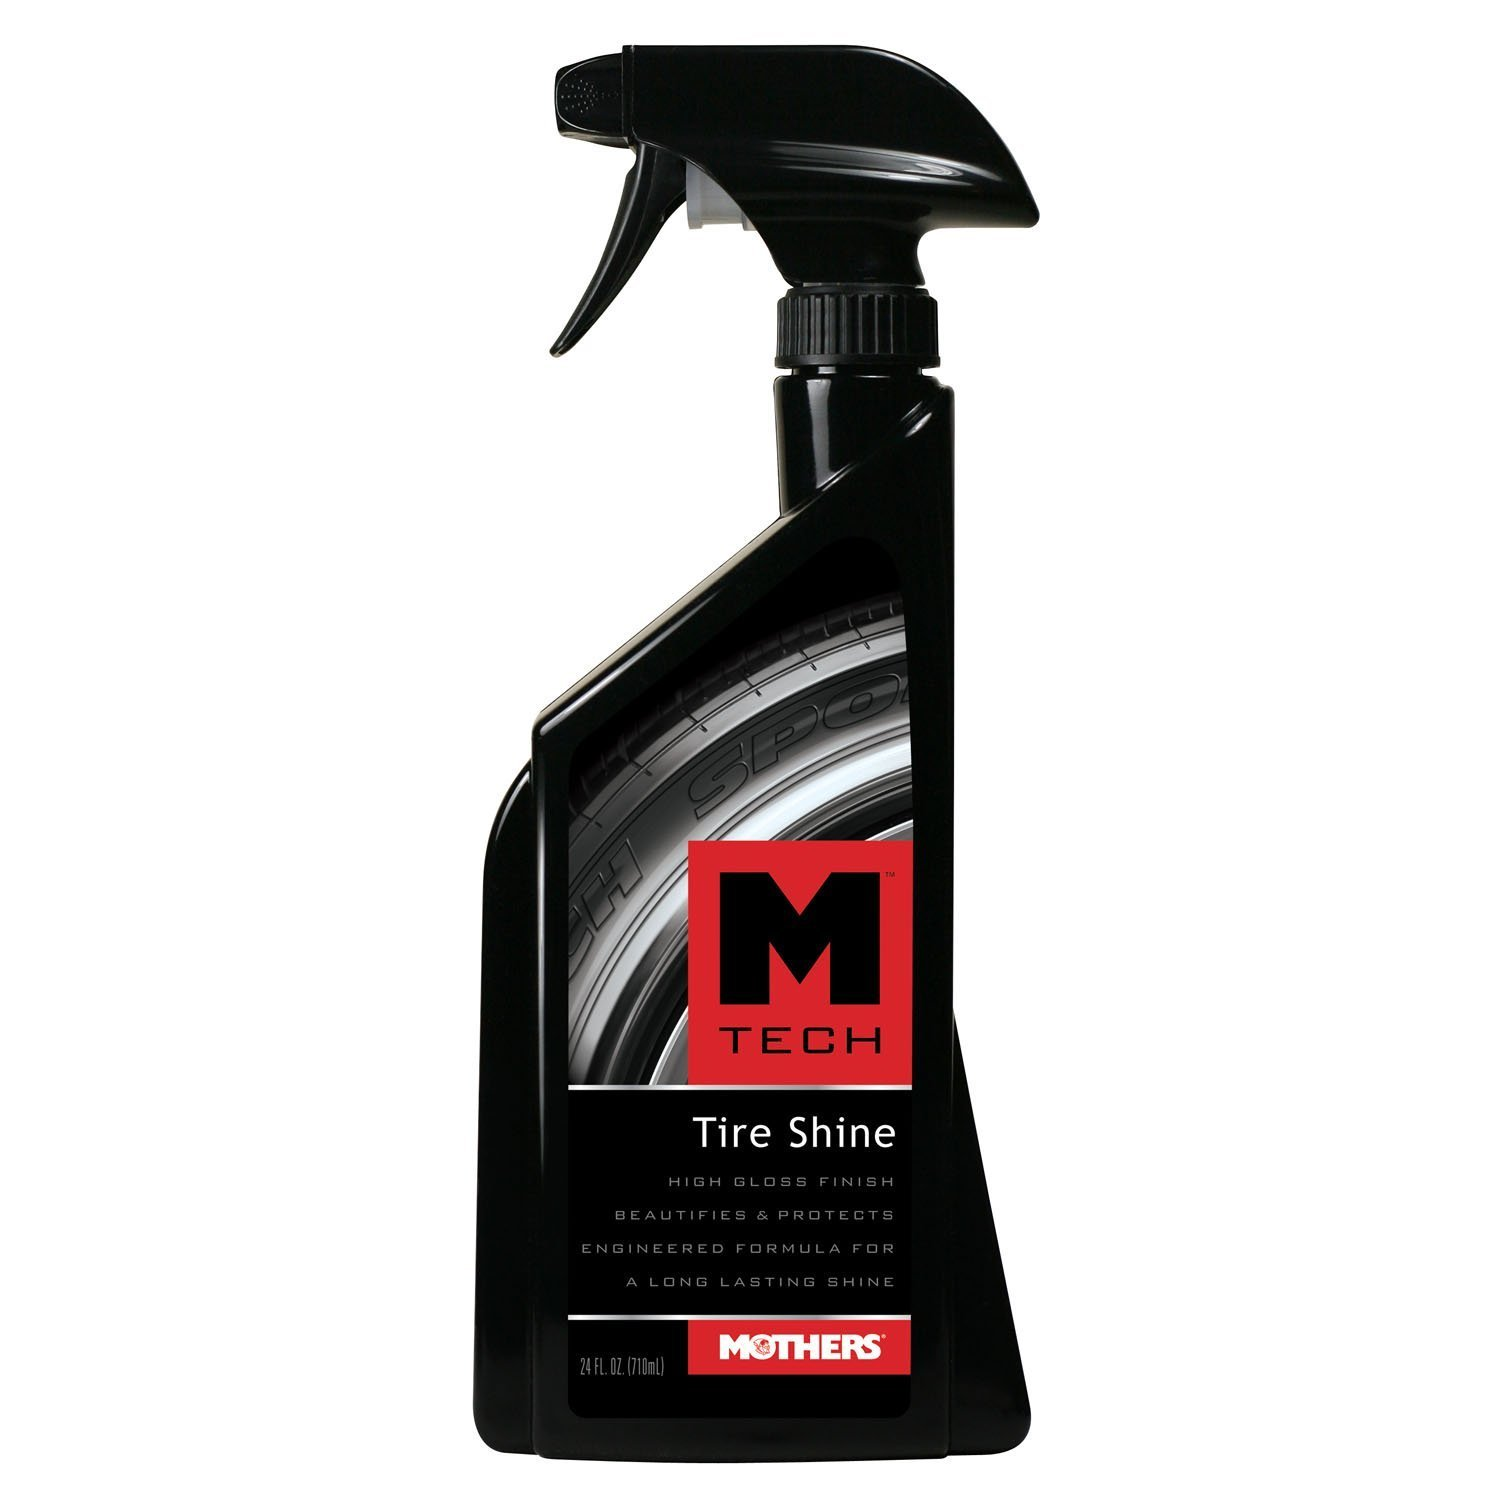 Mothers 22324-6 M-Tech Tire Shine, 24 fl. oz, (Pack of 6)